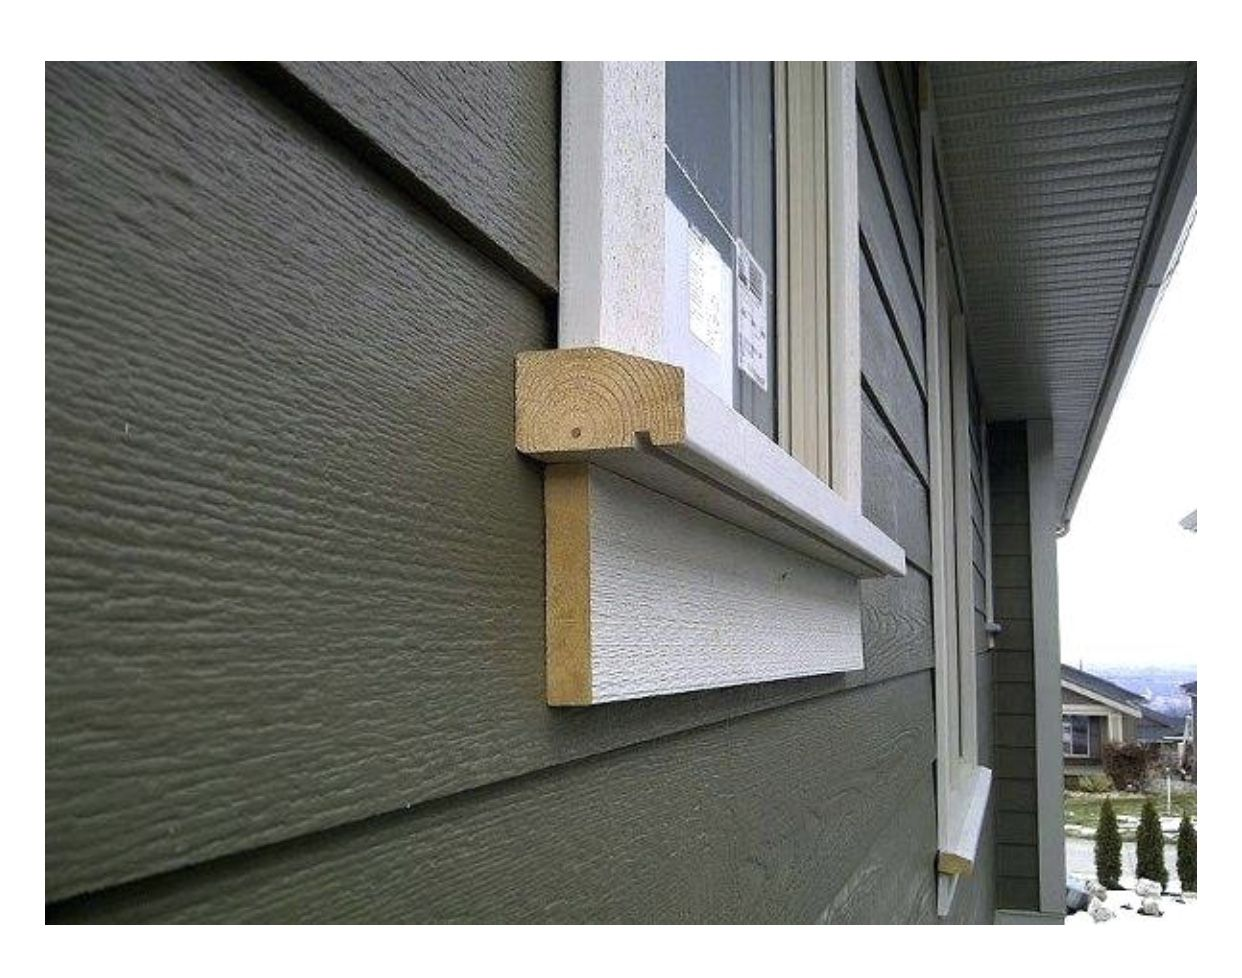 Pin By Angie Atherley Branch On For The Home Window Trim Exterior Exterior Window Sill Wood